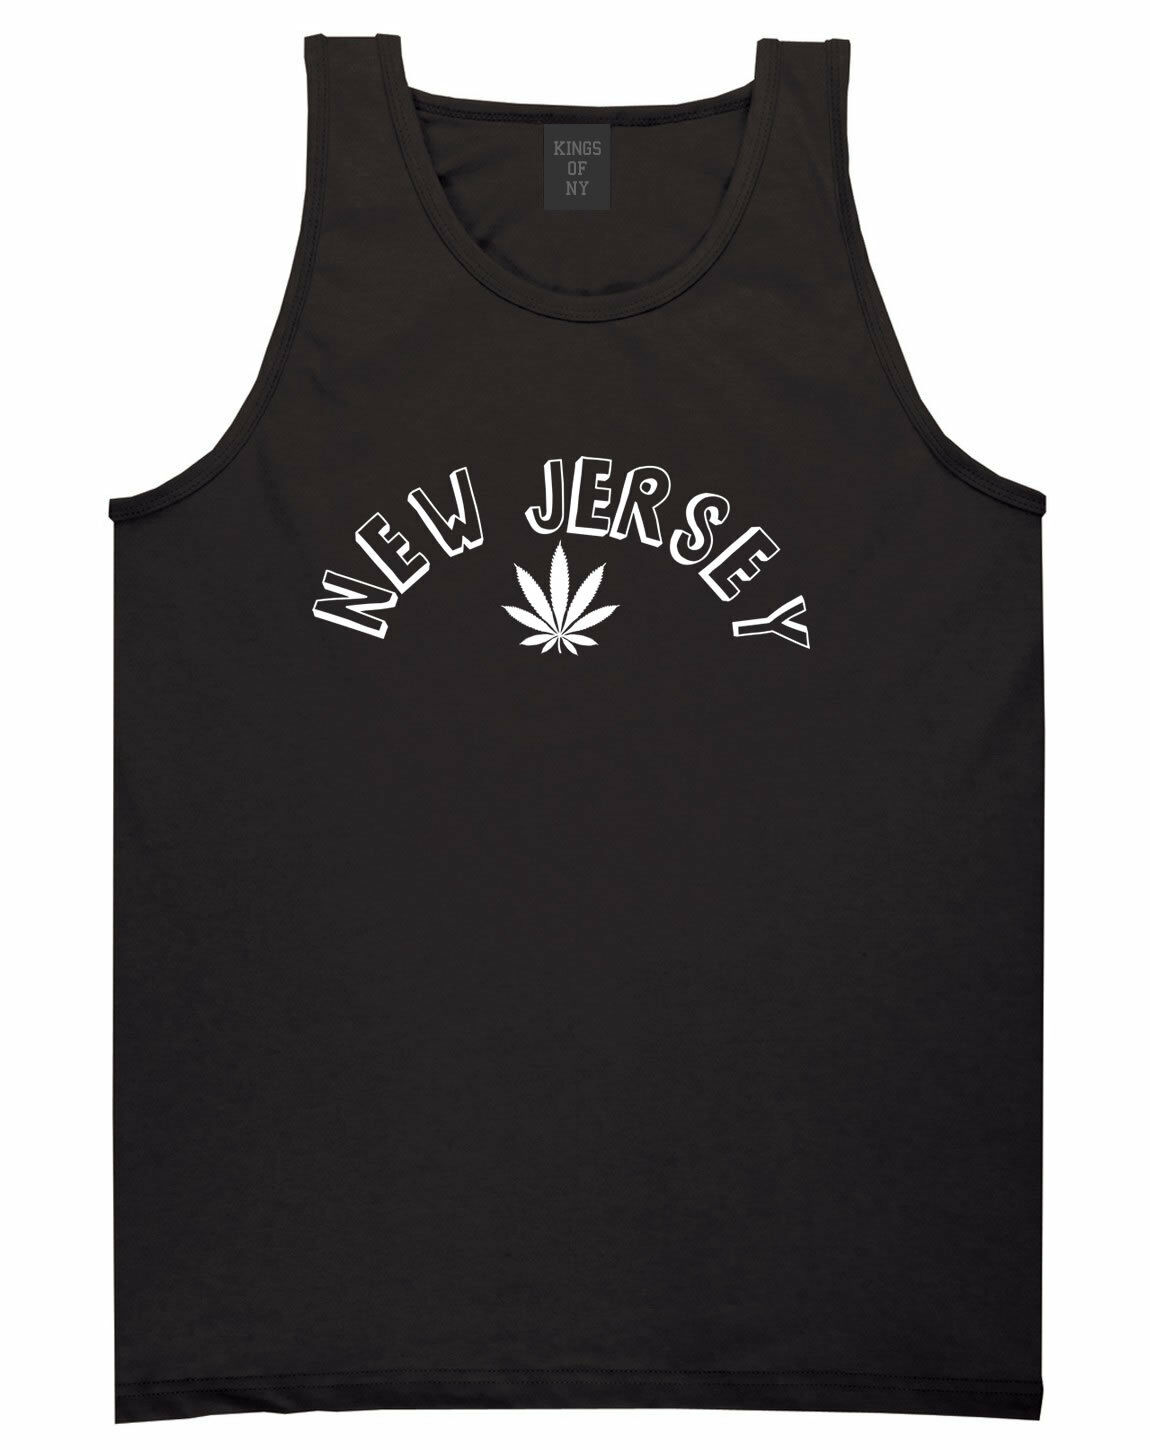 Marijuana Weed New Jersey USA State NJ Tank Top T-Shirt 1